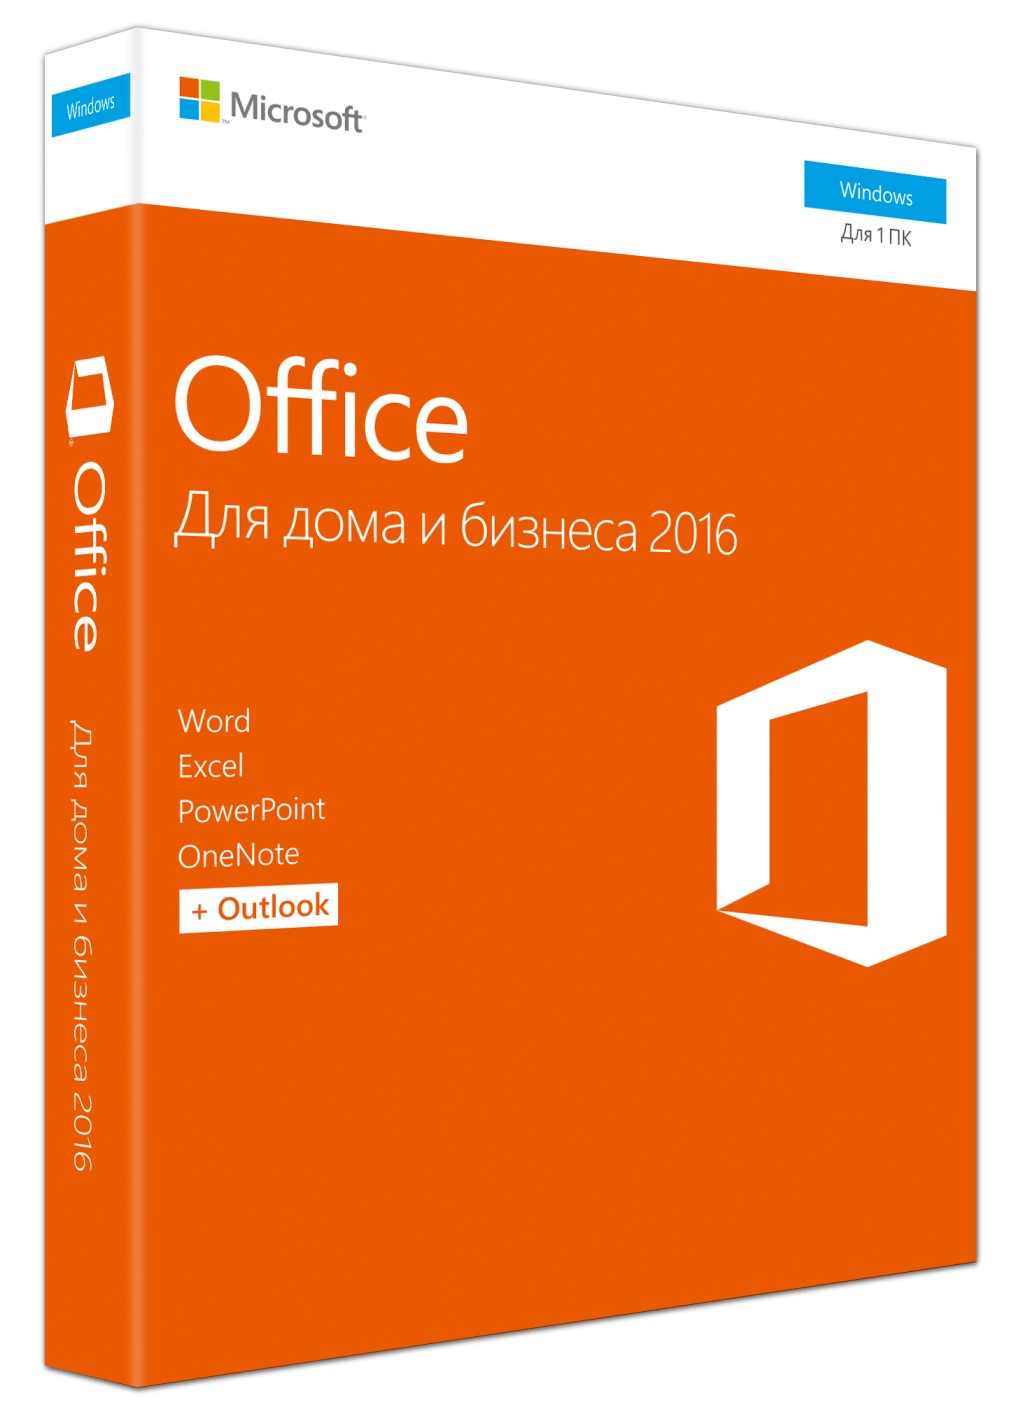 Office Home and Business 2016 (PROMO)